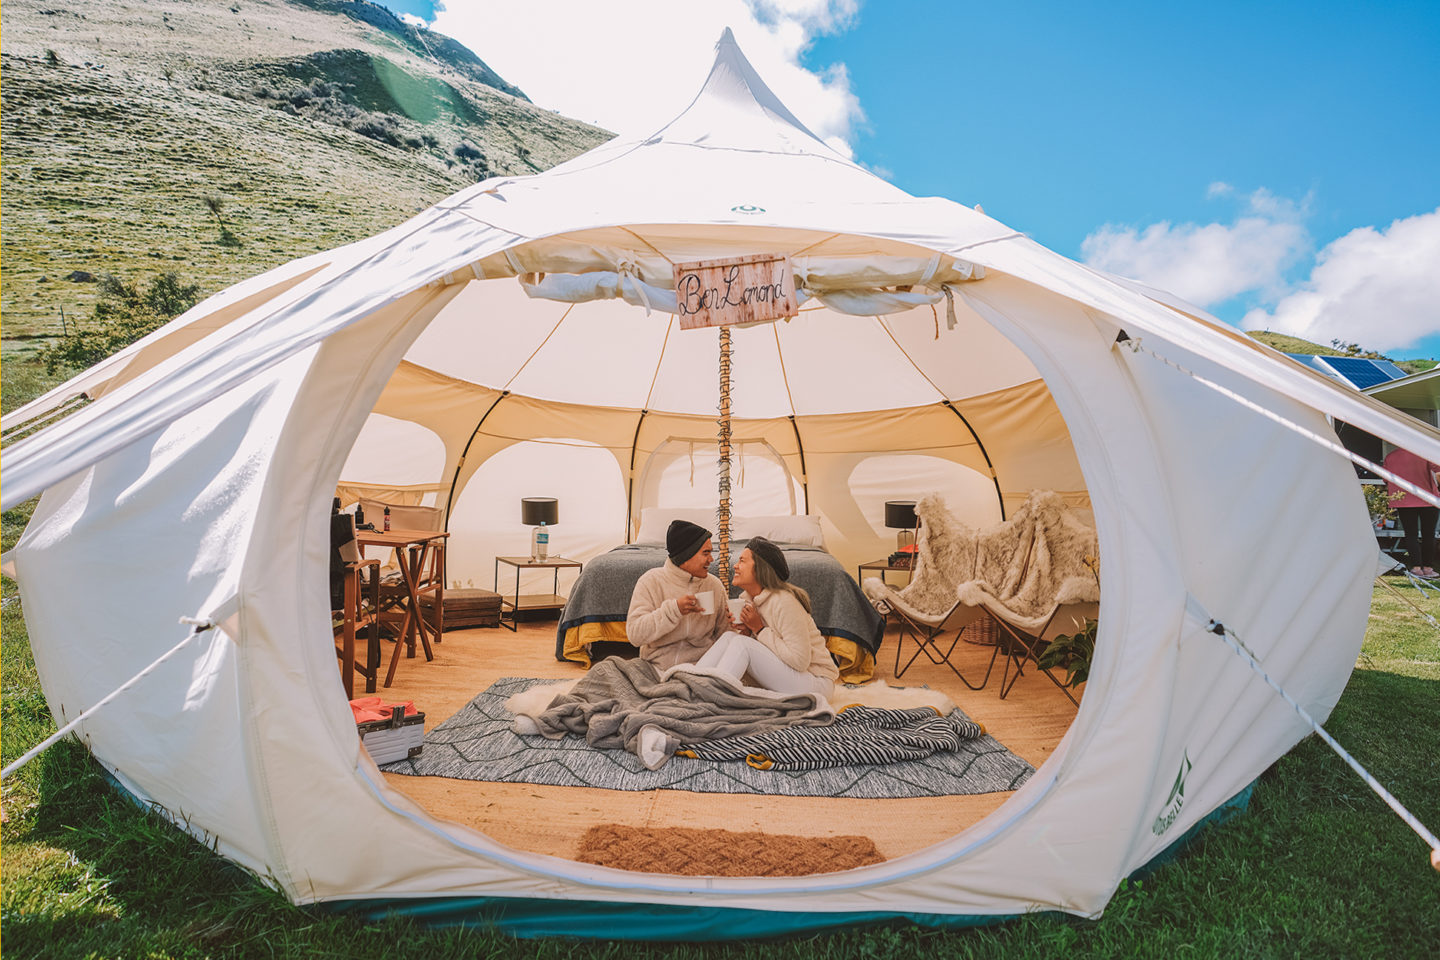 New Zealand Luxury Glam camping